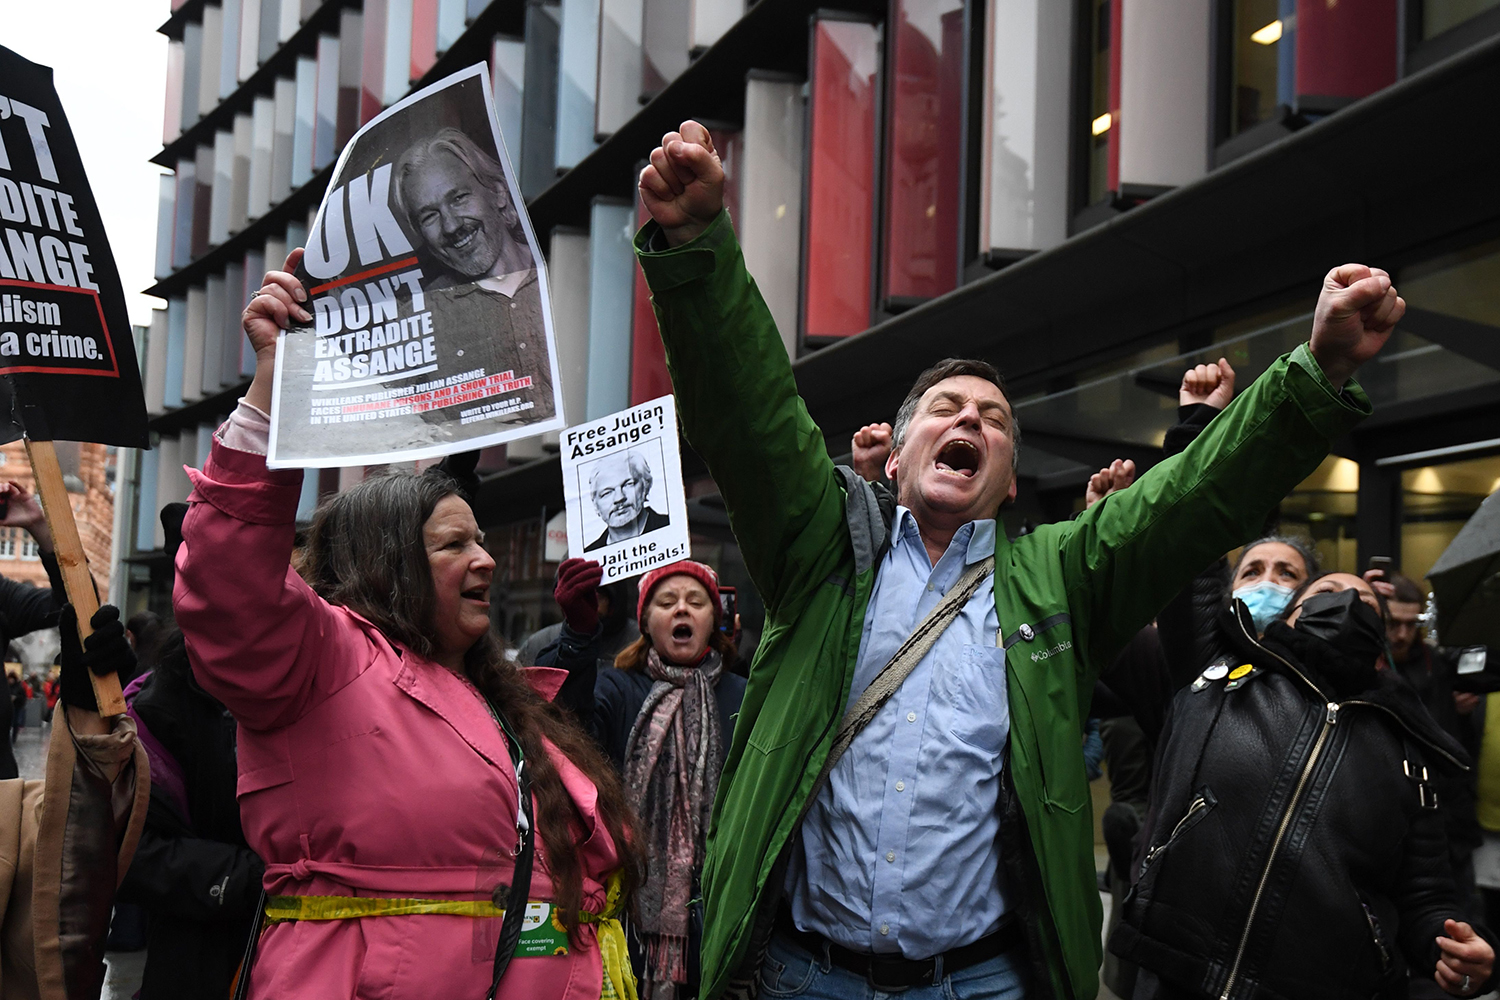 Supporters of Wikileaks founder Julian Assange celebrate outside the Old Bailey court in central London on Jan. 4 after a judge ruled that Assange should not be extradited to the United States to face espionage charges. DANIEL LEAL-OLIVAS/AFP via Getty Images